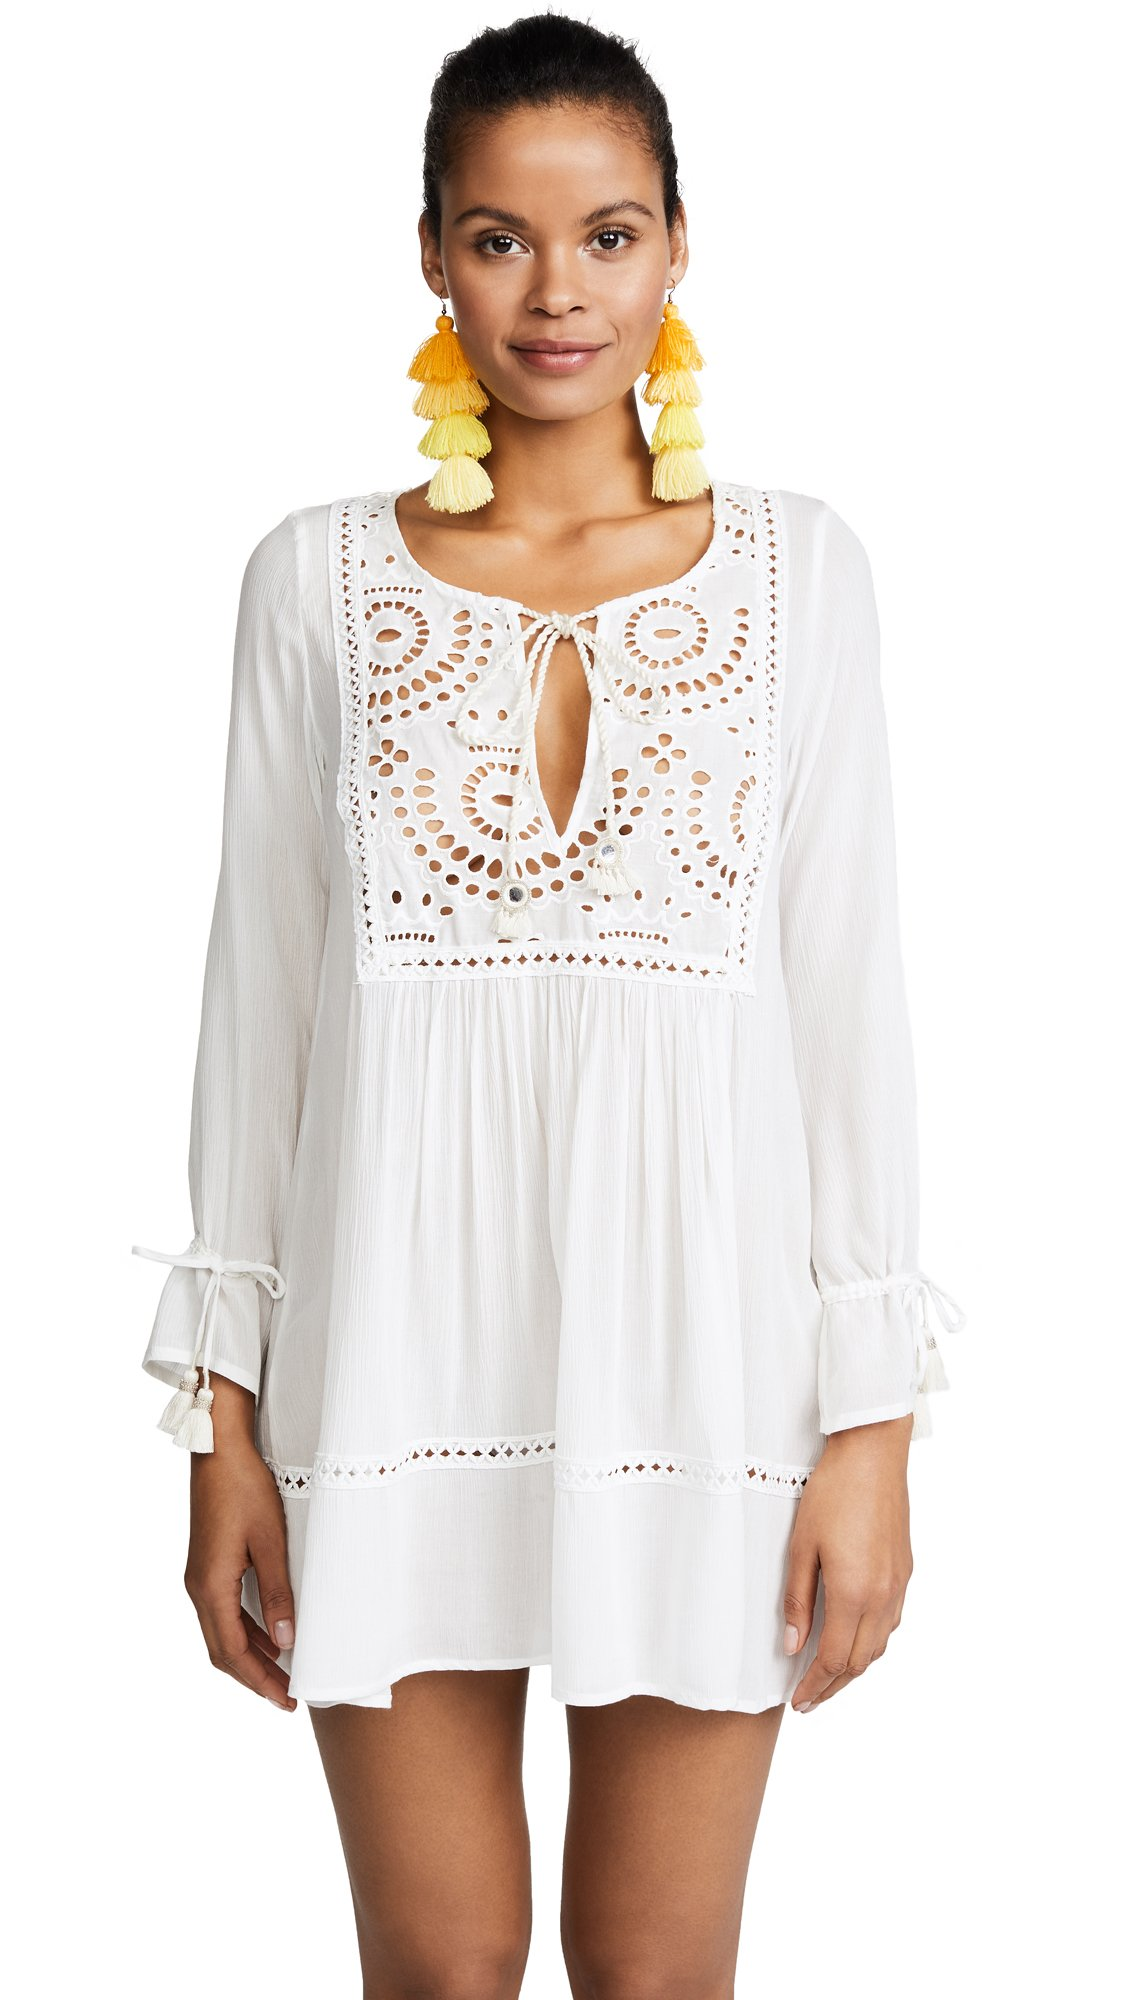 OndadeMar Women's Eyelet Tunic, White, Medium by OndadeMar